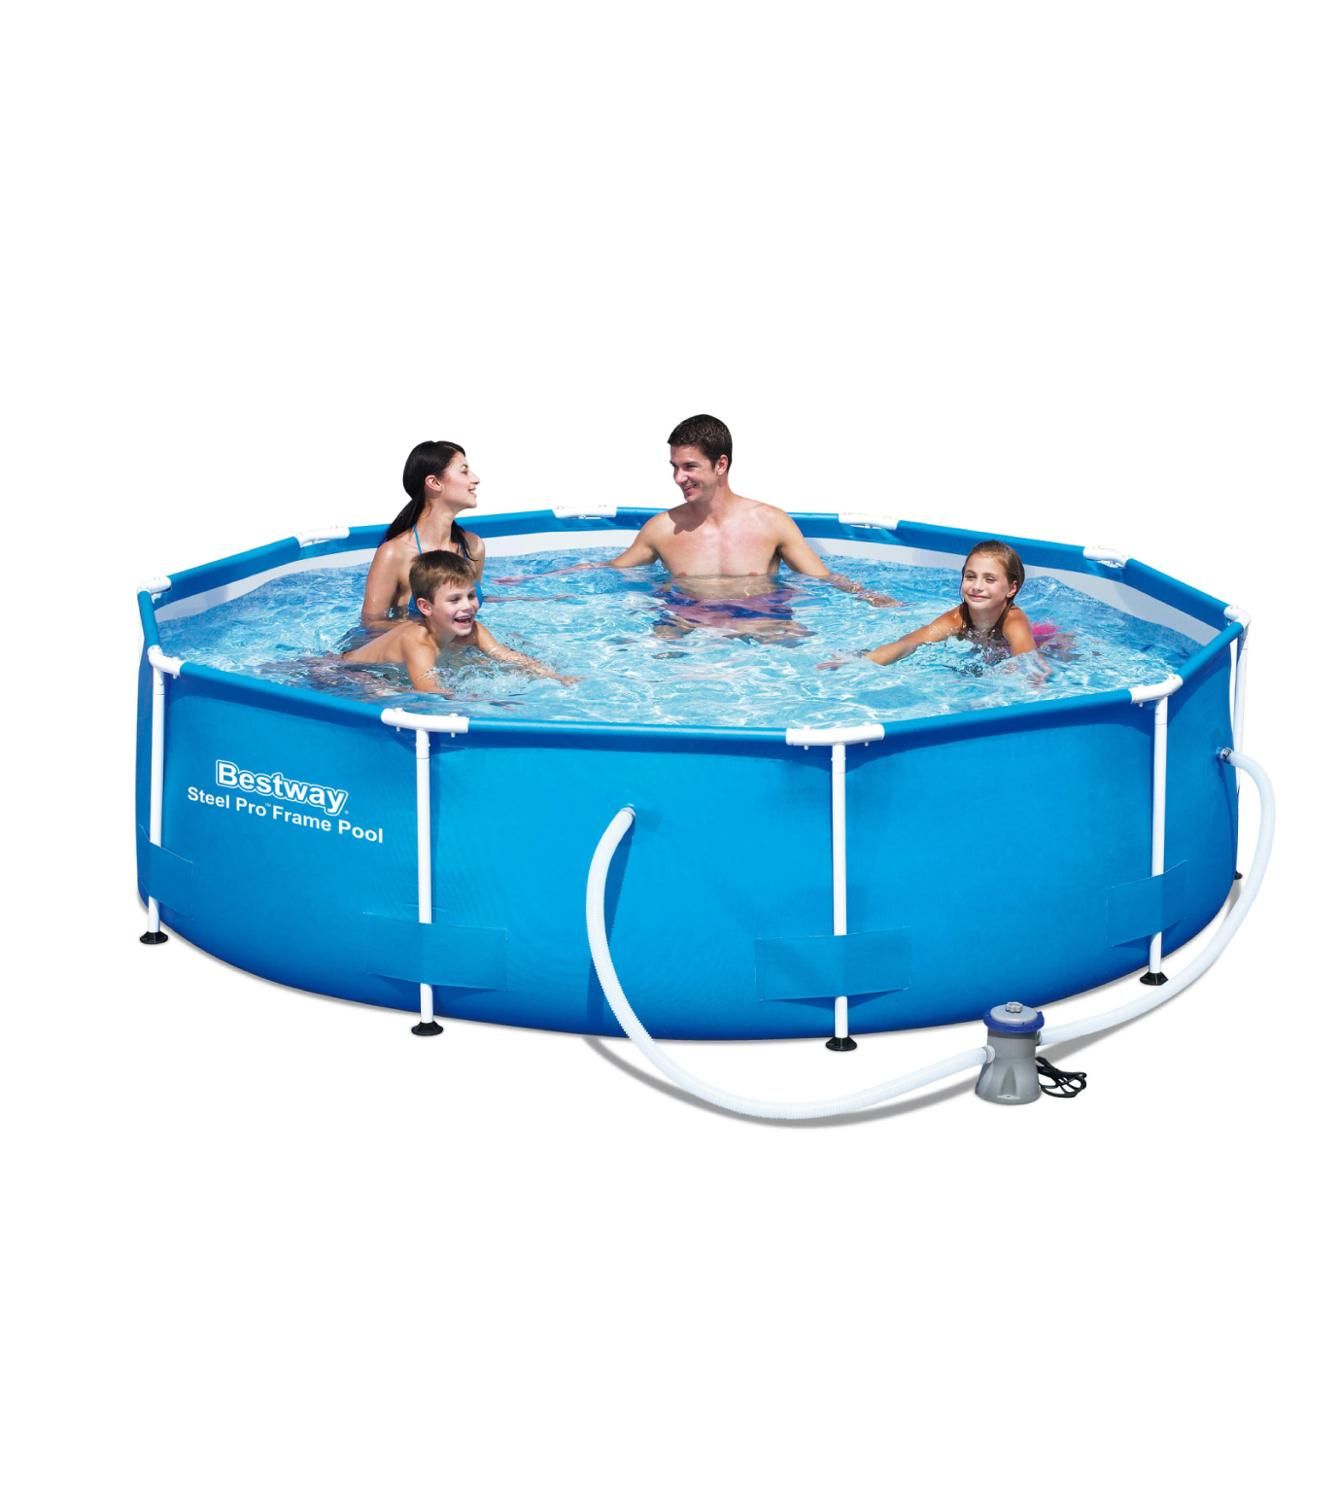 Scaffold Round Swimming Pool Summer Outdoor 305x100 Cm, 6148 L, Bestway Steel Pro, With Filter, Item No. 12475/56334